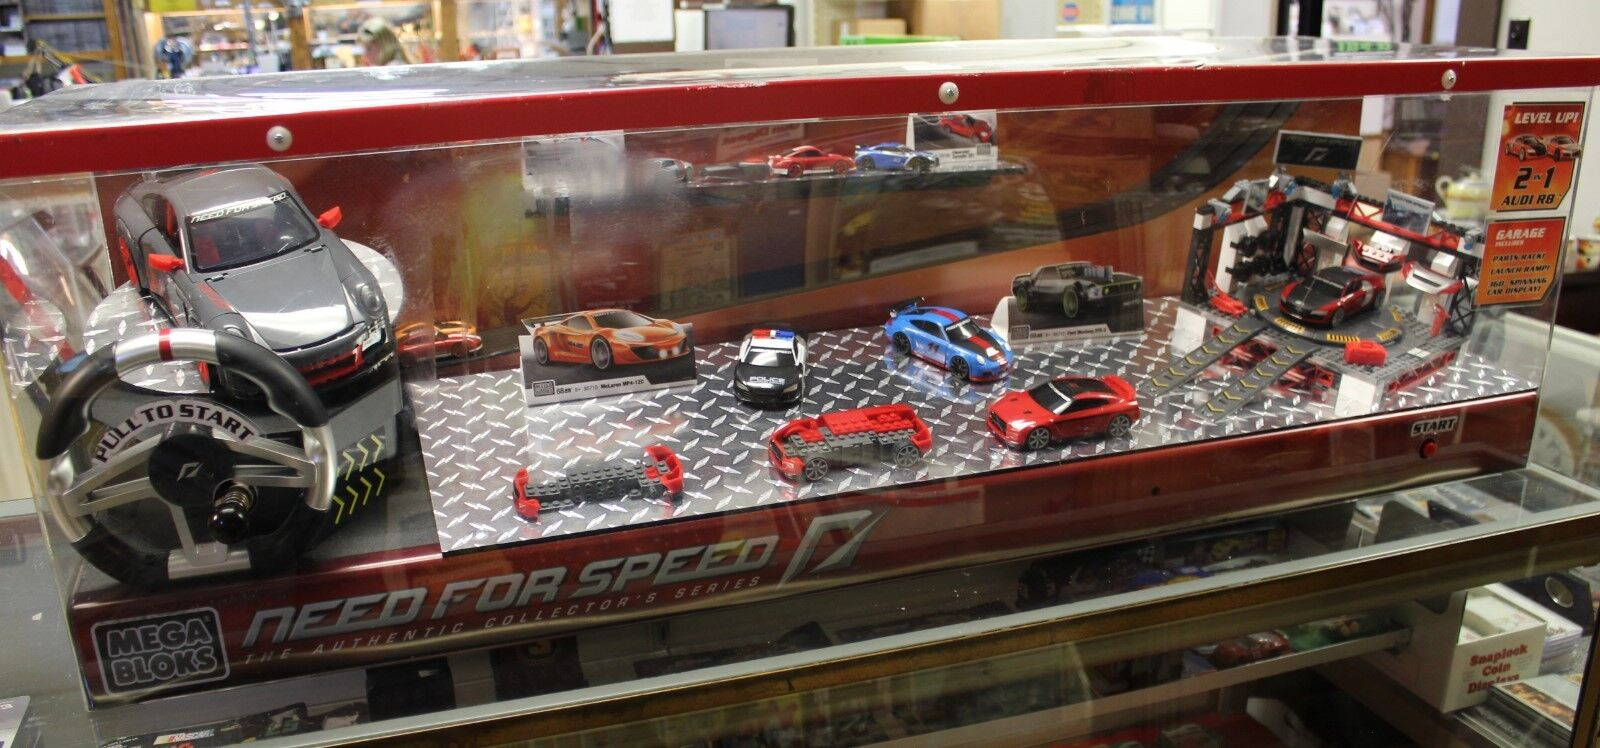 MEGA BLOKS Need For Speed The Authentic Collectors Series Working Display  4